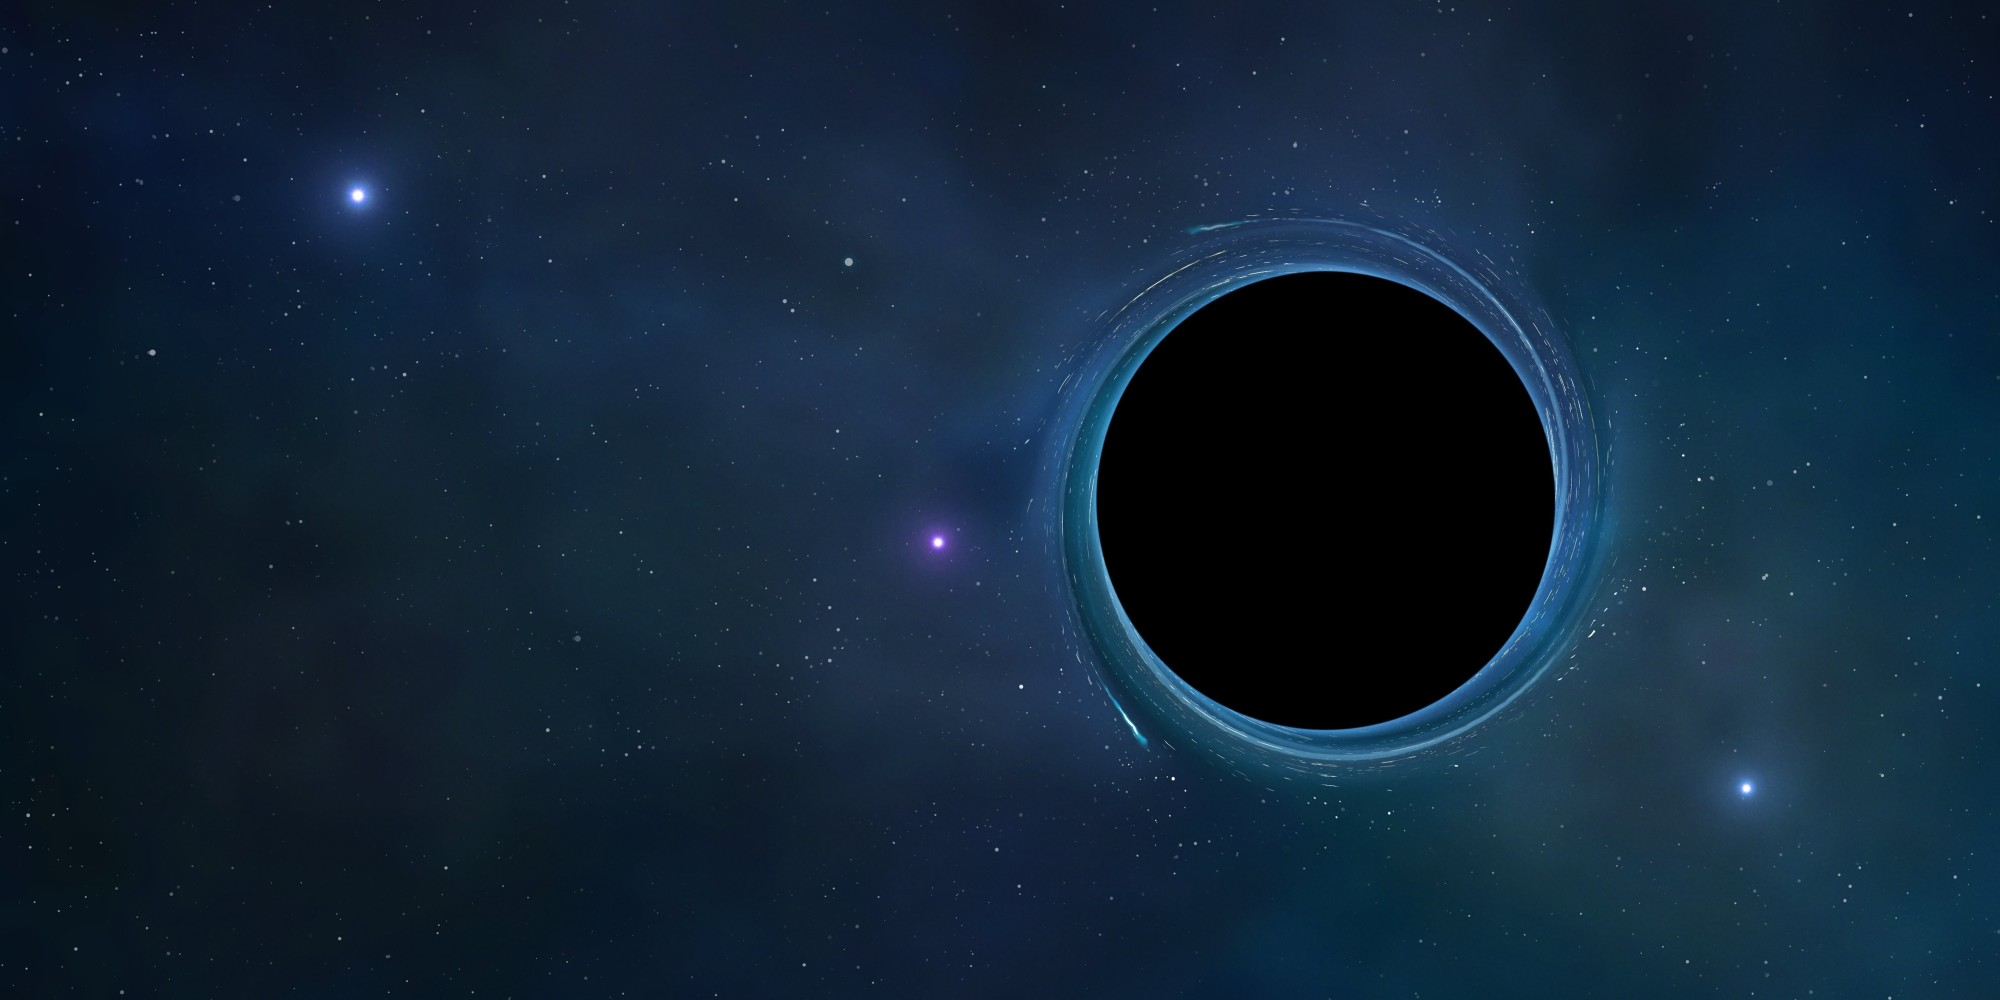 supermassive black hole real proof - photo #8